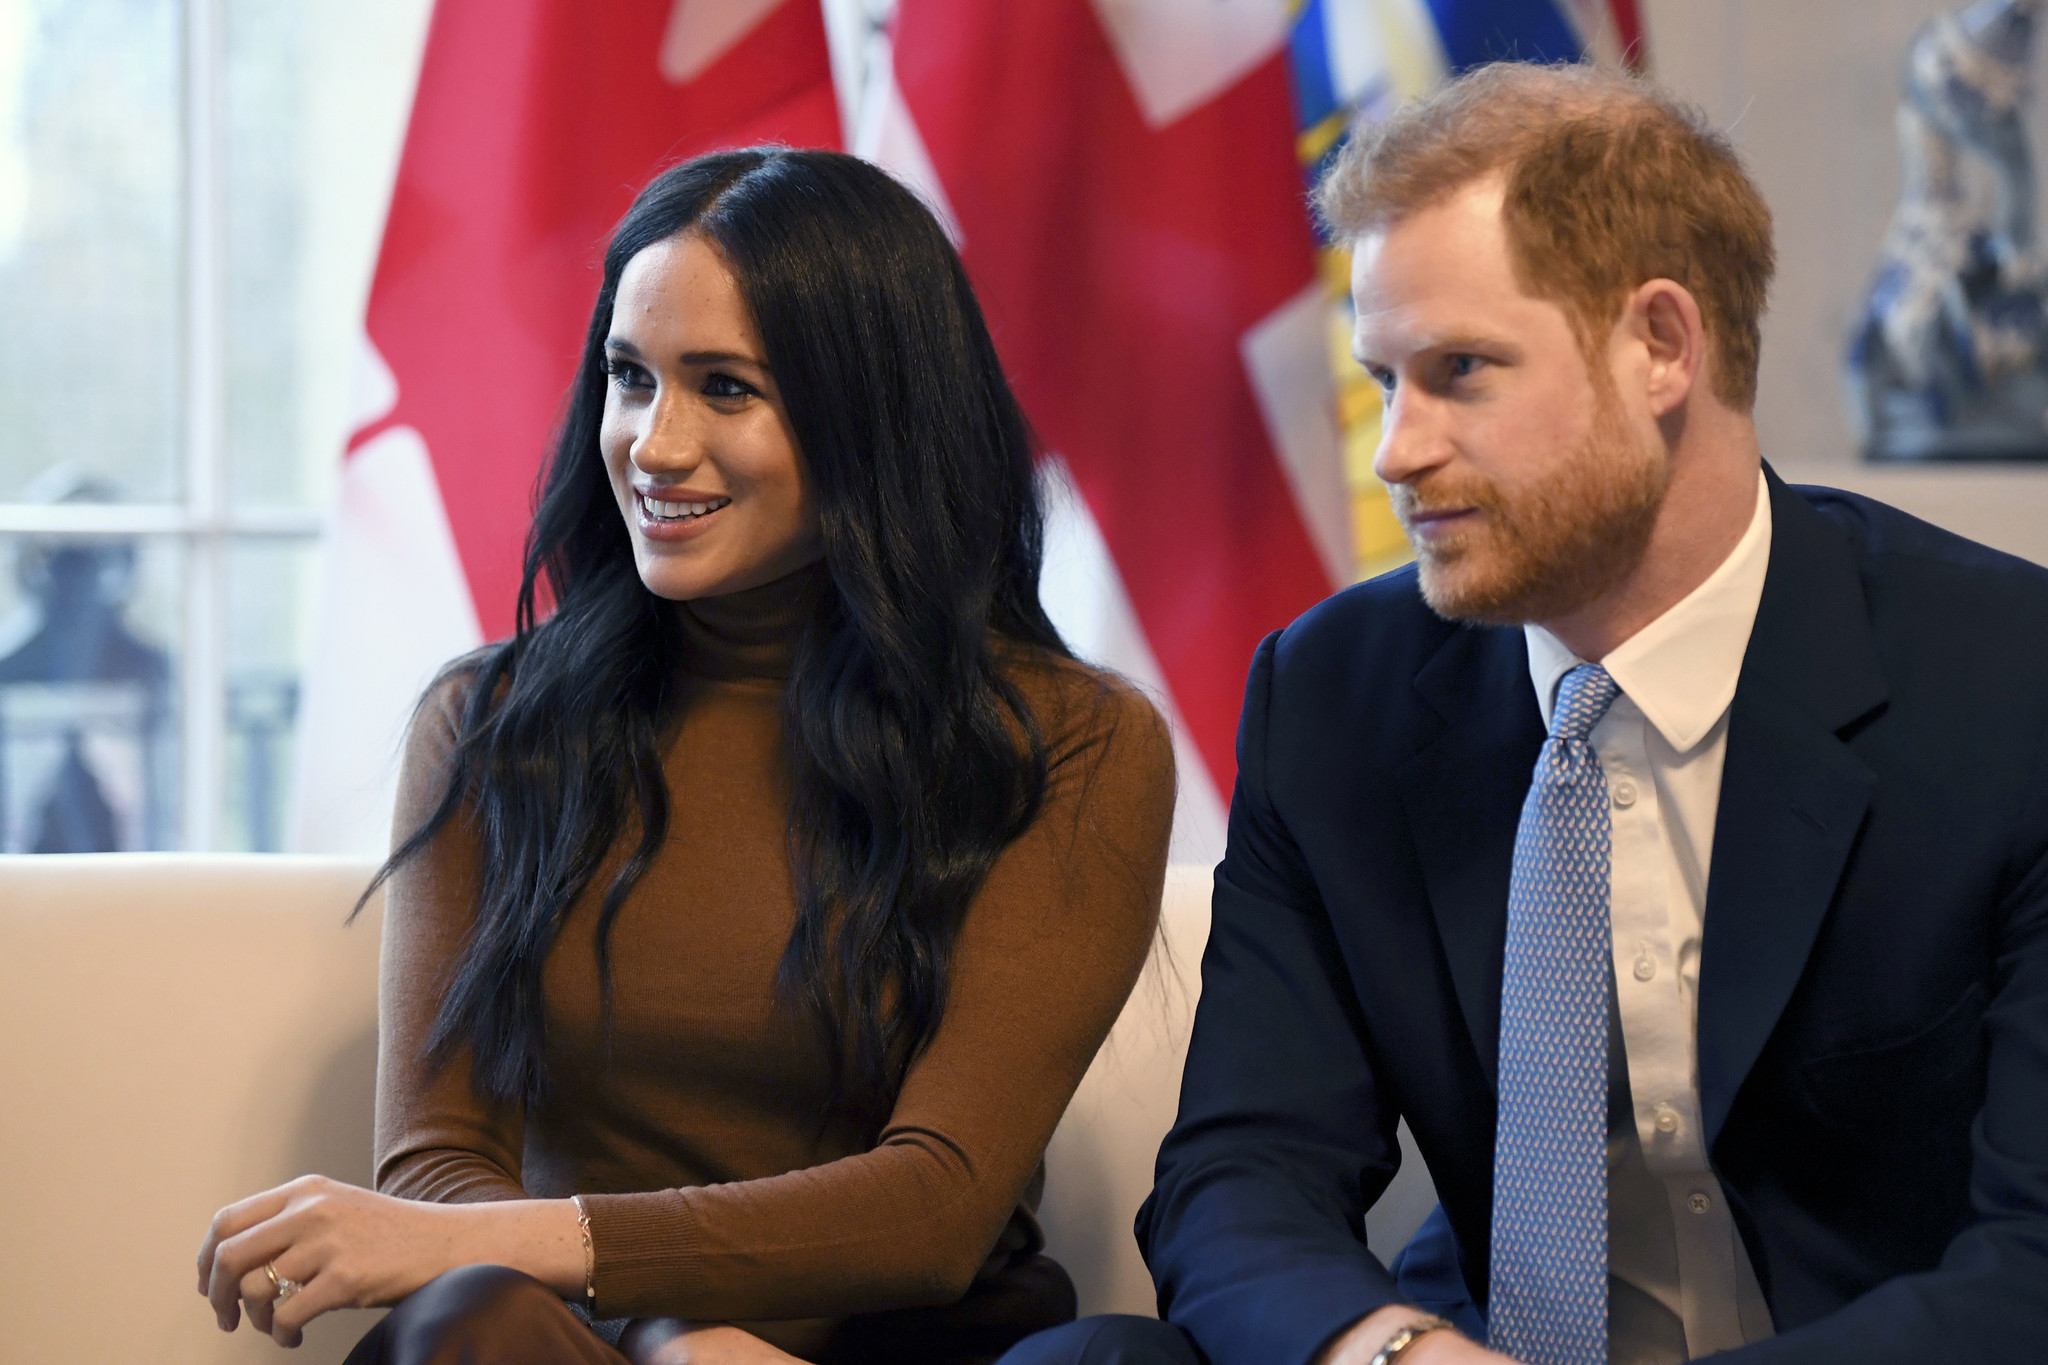 Meghan Markle and Prince Harry's trip to North Amercia